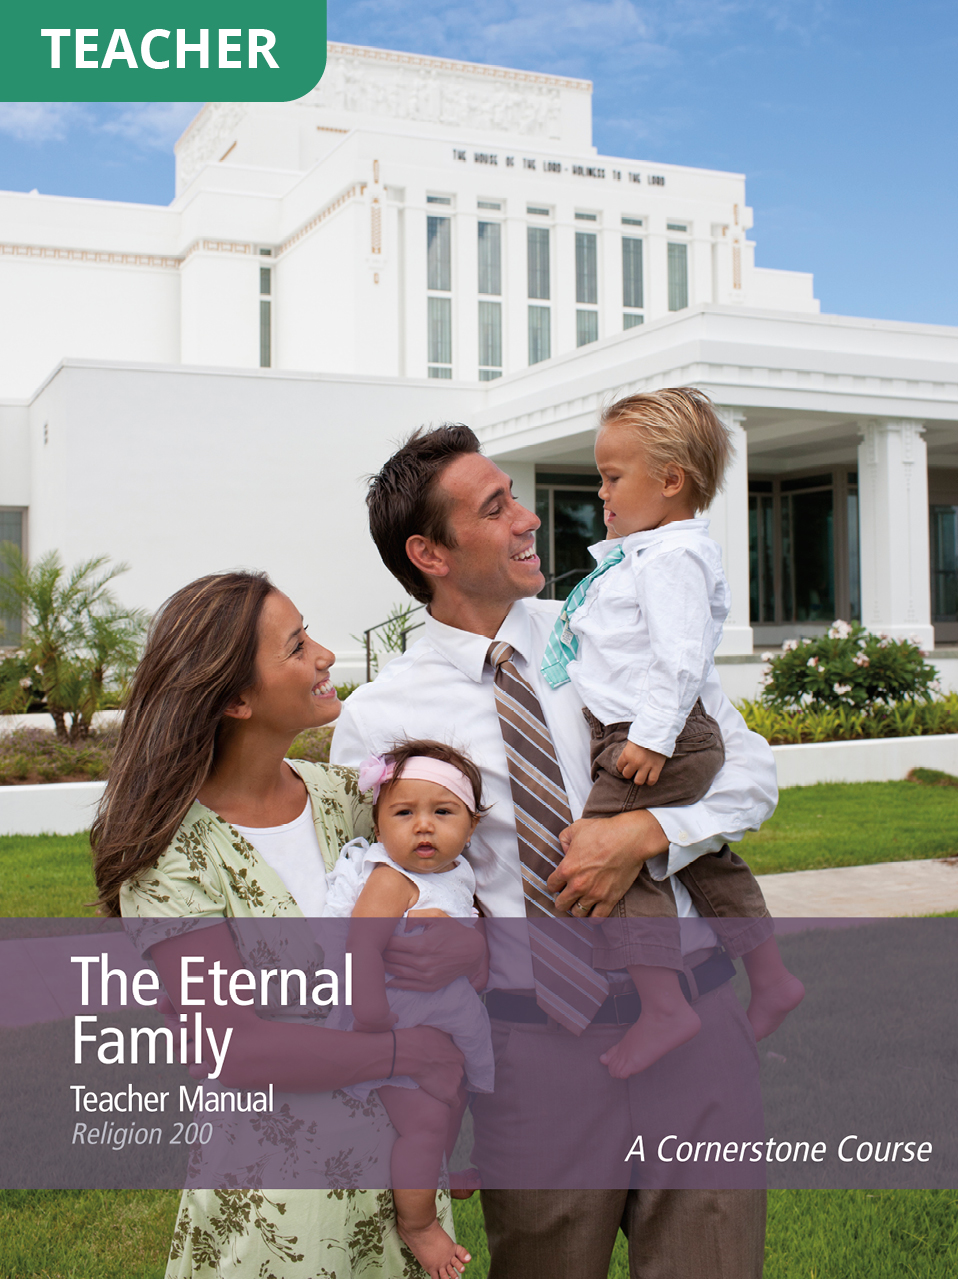 The Eternal Family Teacher Manual